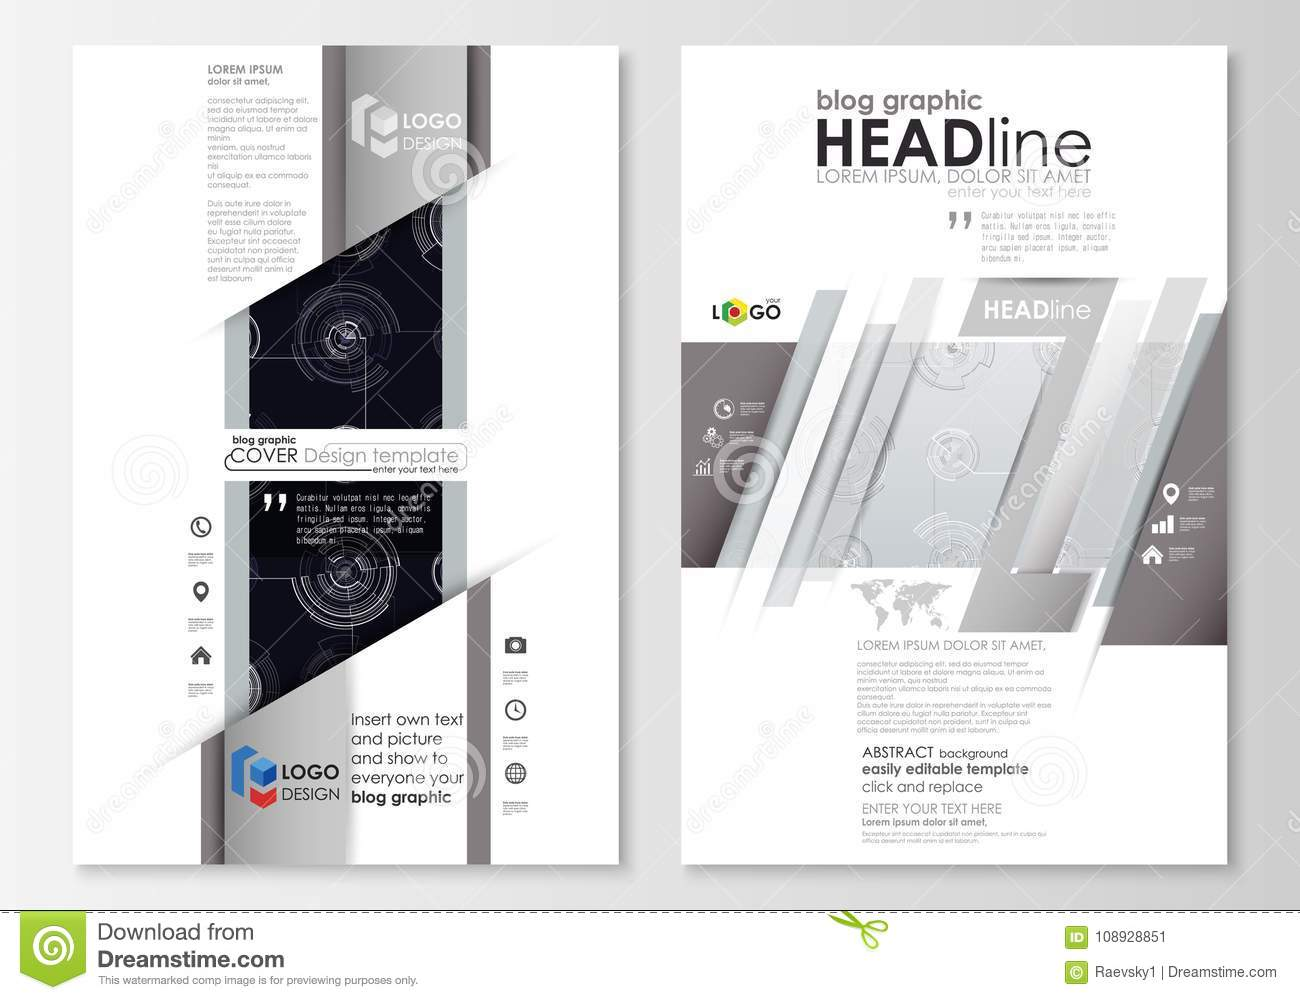 blog graphic business templates page website template flat layout